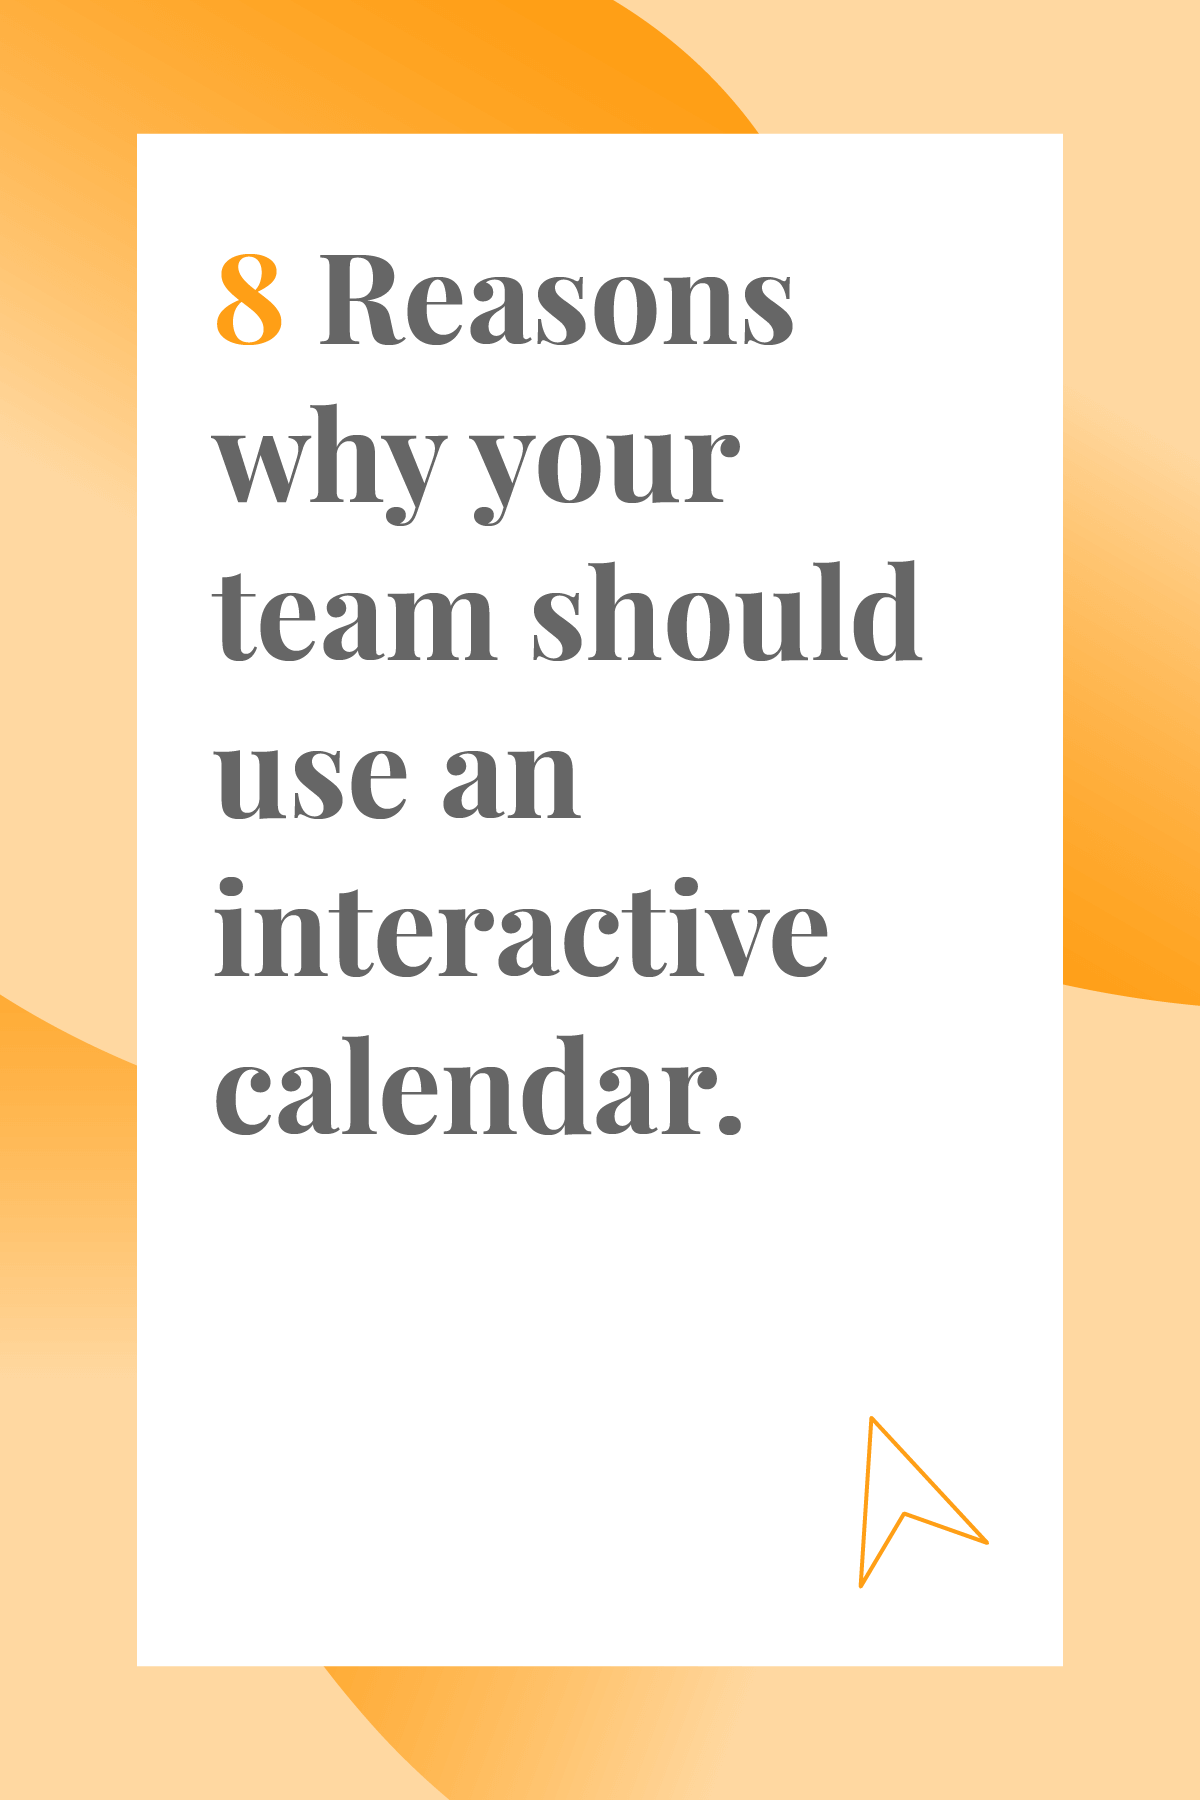 If your team isn't using an interactive calendar yet, now's the time to start. Here are 8 reasons why an interactive calendar will make team management so much easier, plus our advice on which calendars to try first.